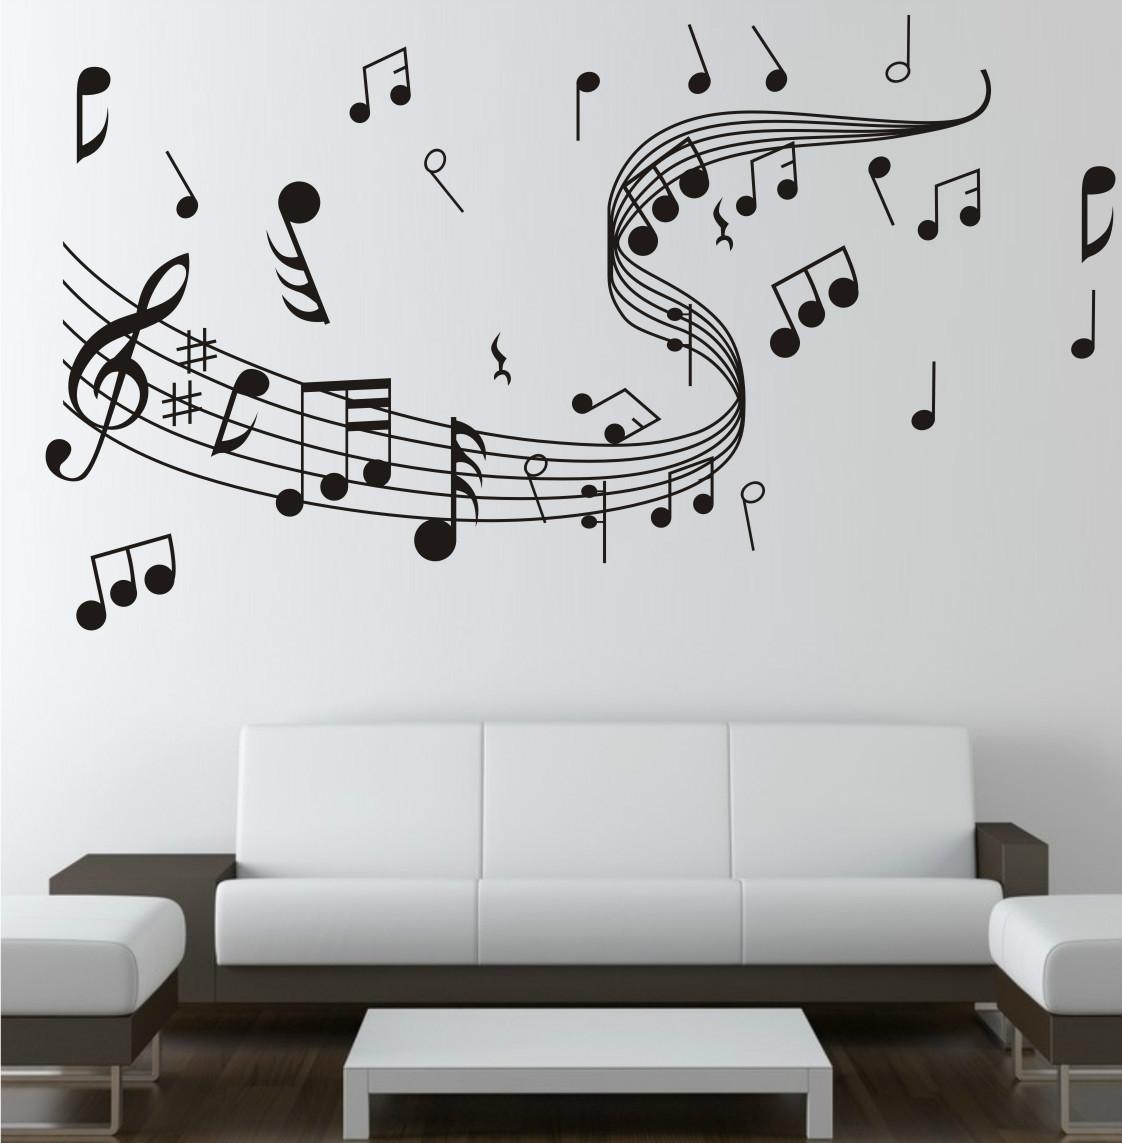 new diy wall stickers creative wall papers musical notation for new diy wall stickers creative wall